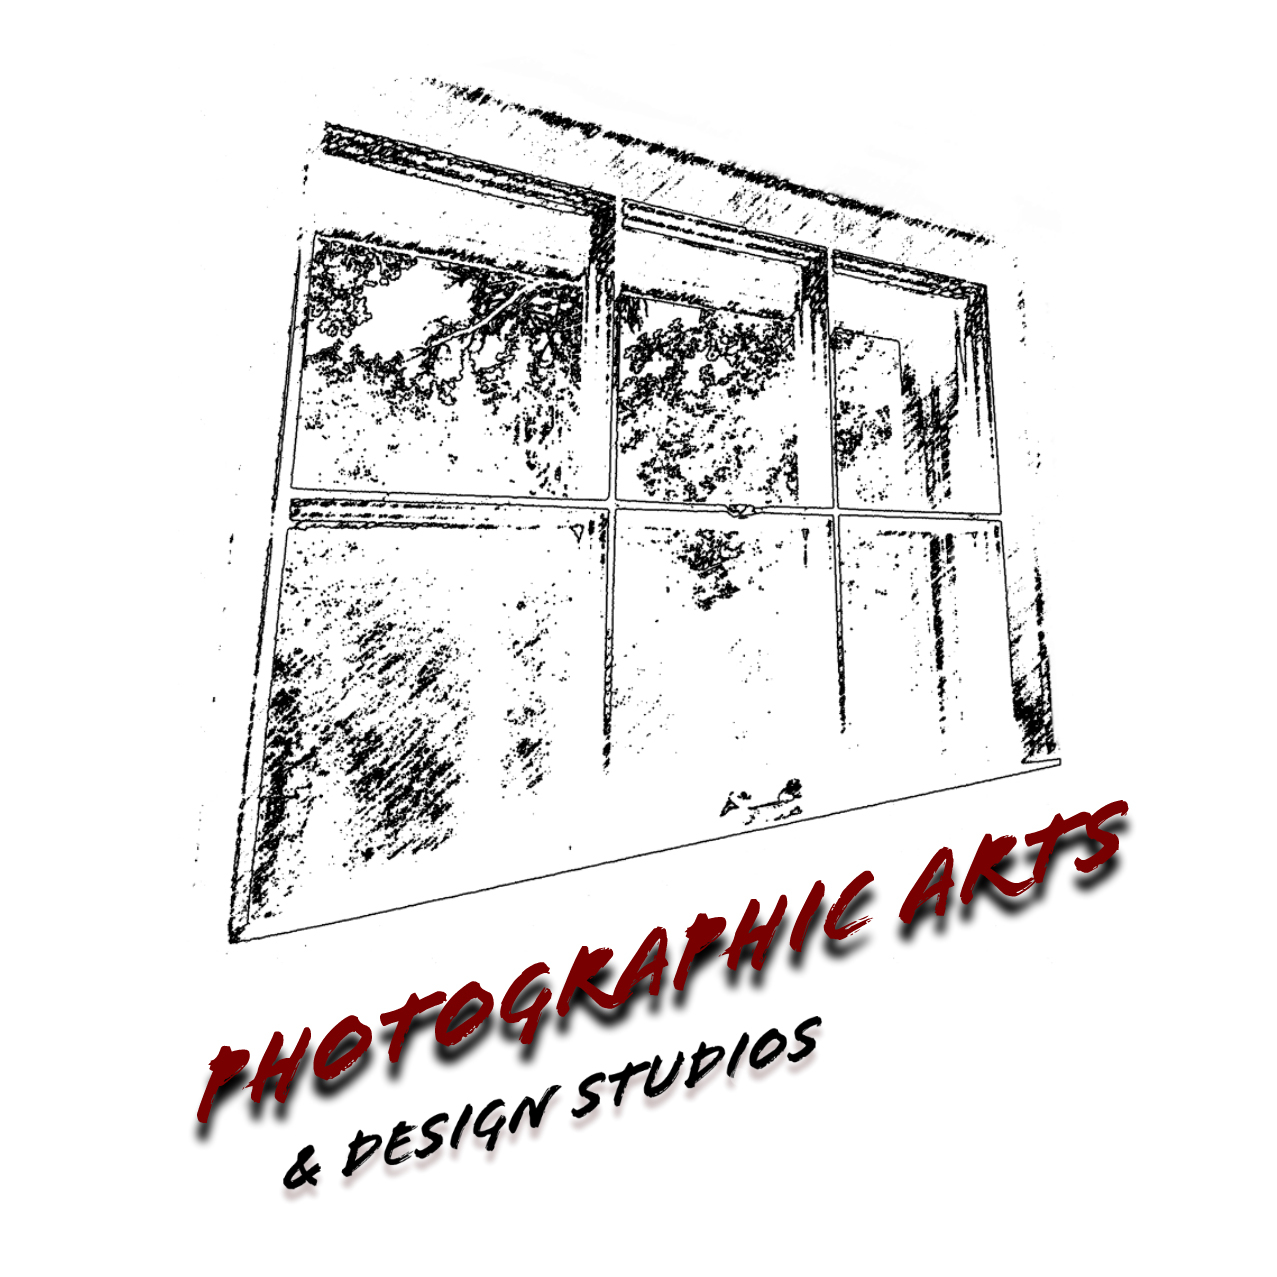 Photographic Arts And Design Studio